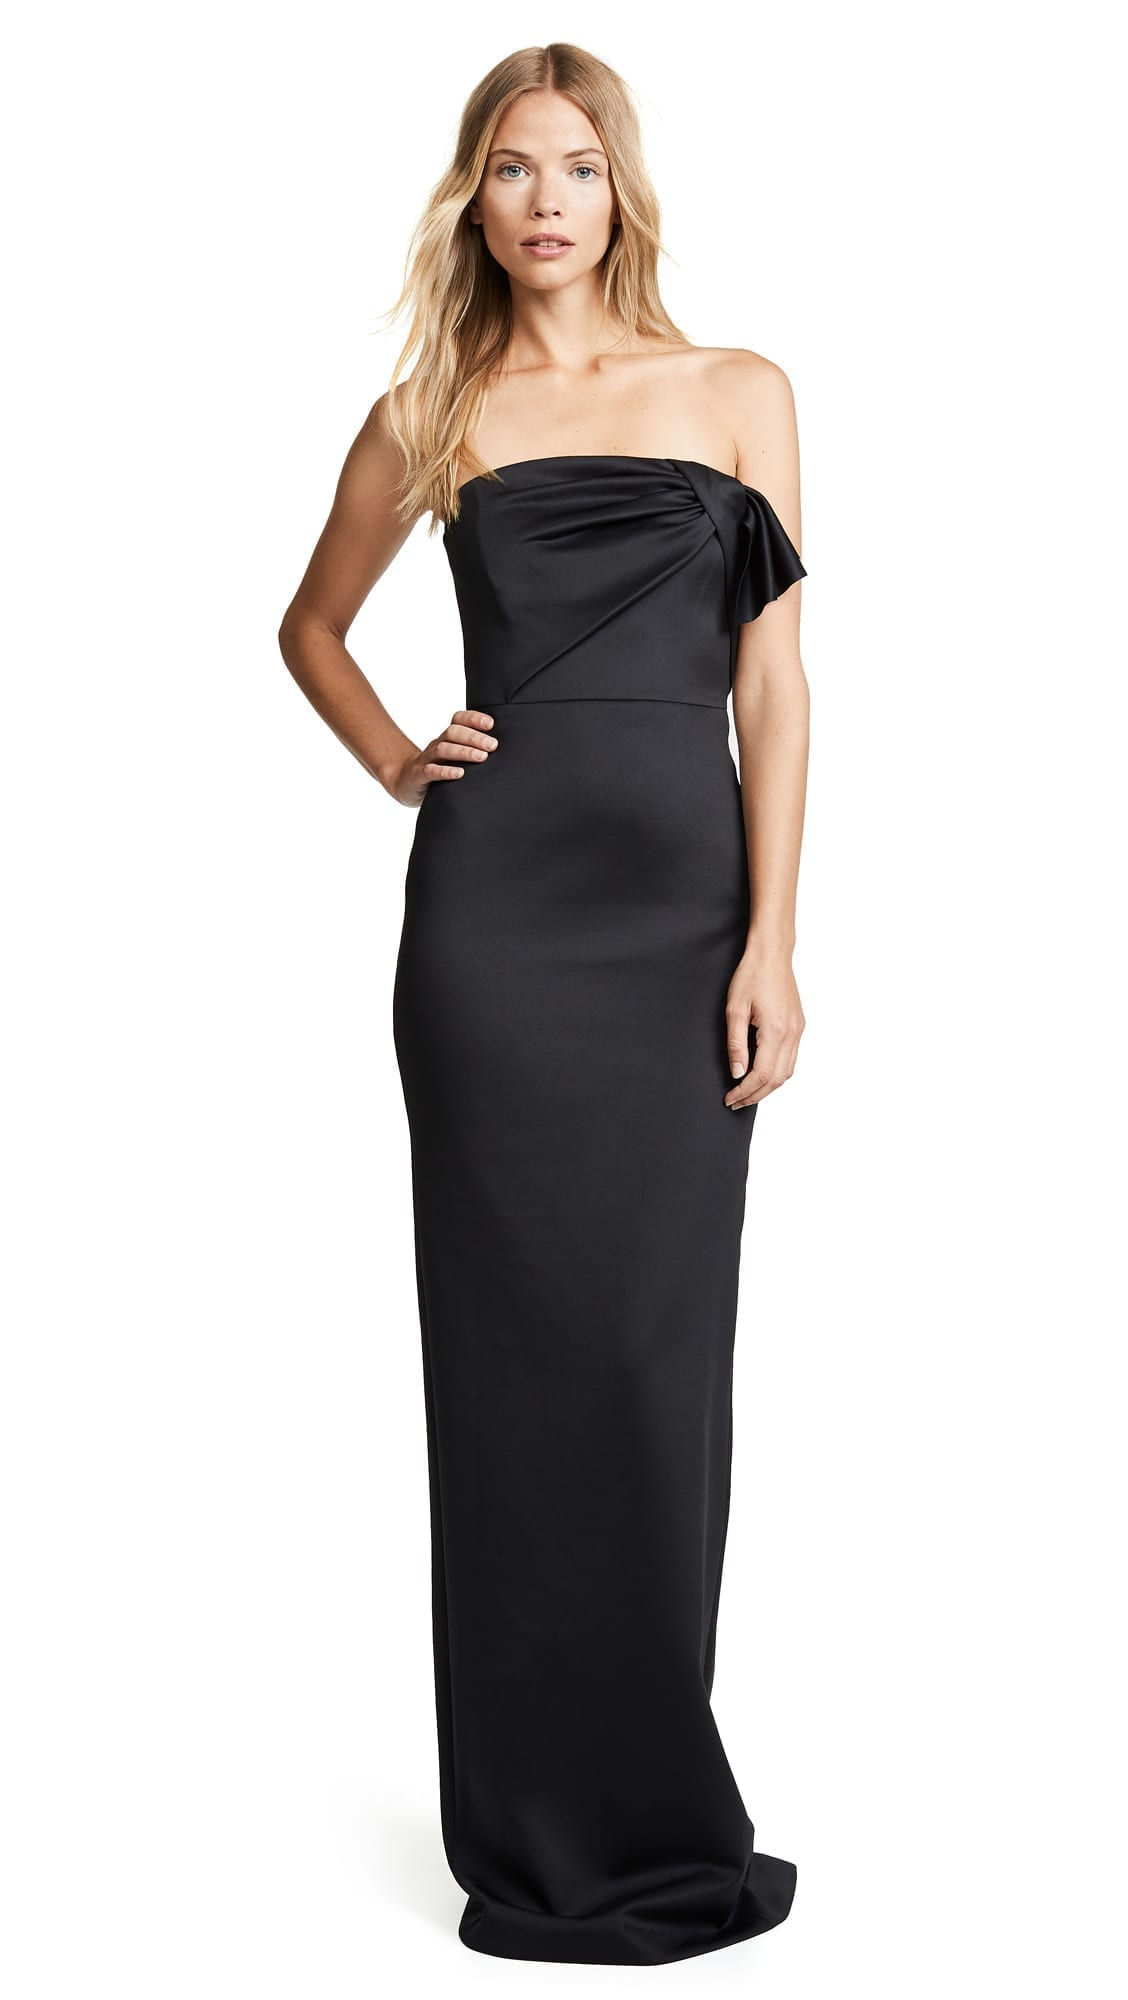 BLACK HALO Divina Sleeveles Long Black Gown - We Select Dresses